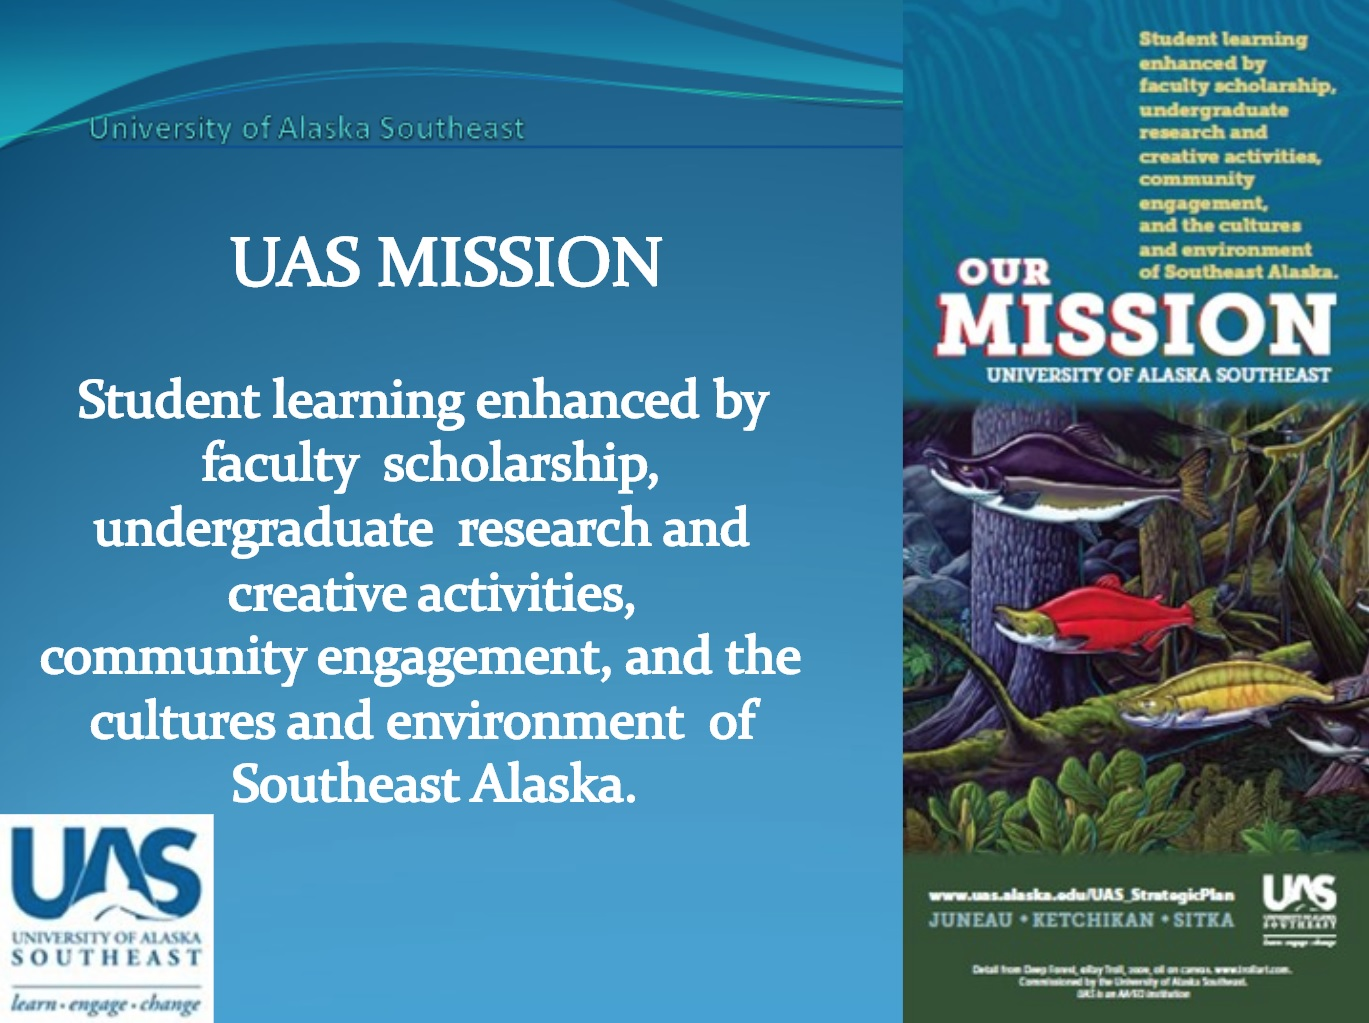 UAS Mission - Student learning enhanced by faculty scholarship, undergraduate research and creative activities, community engagement, and the cultures and environment of Southeast Alaska,